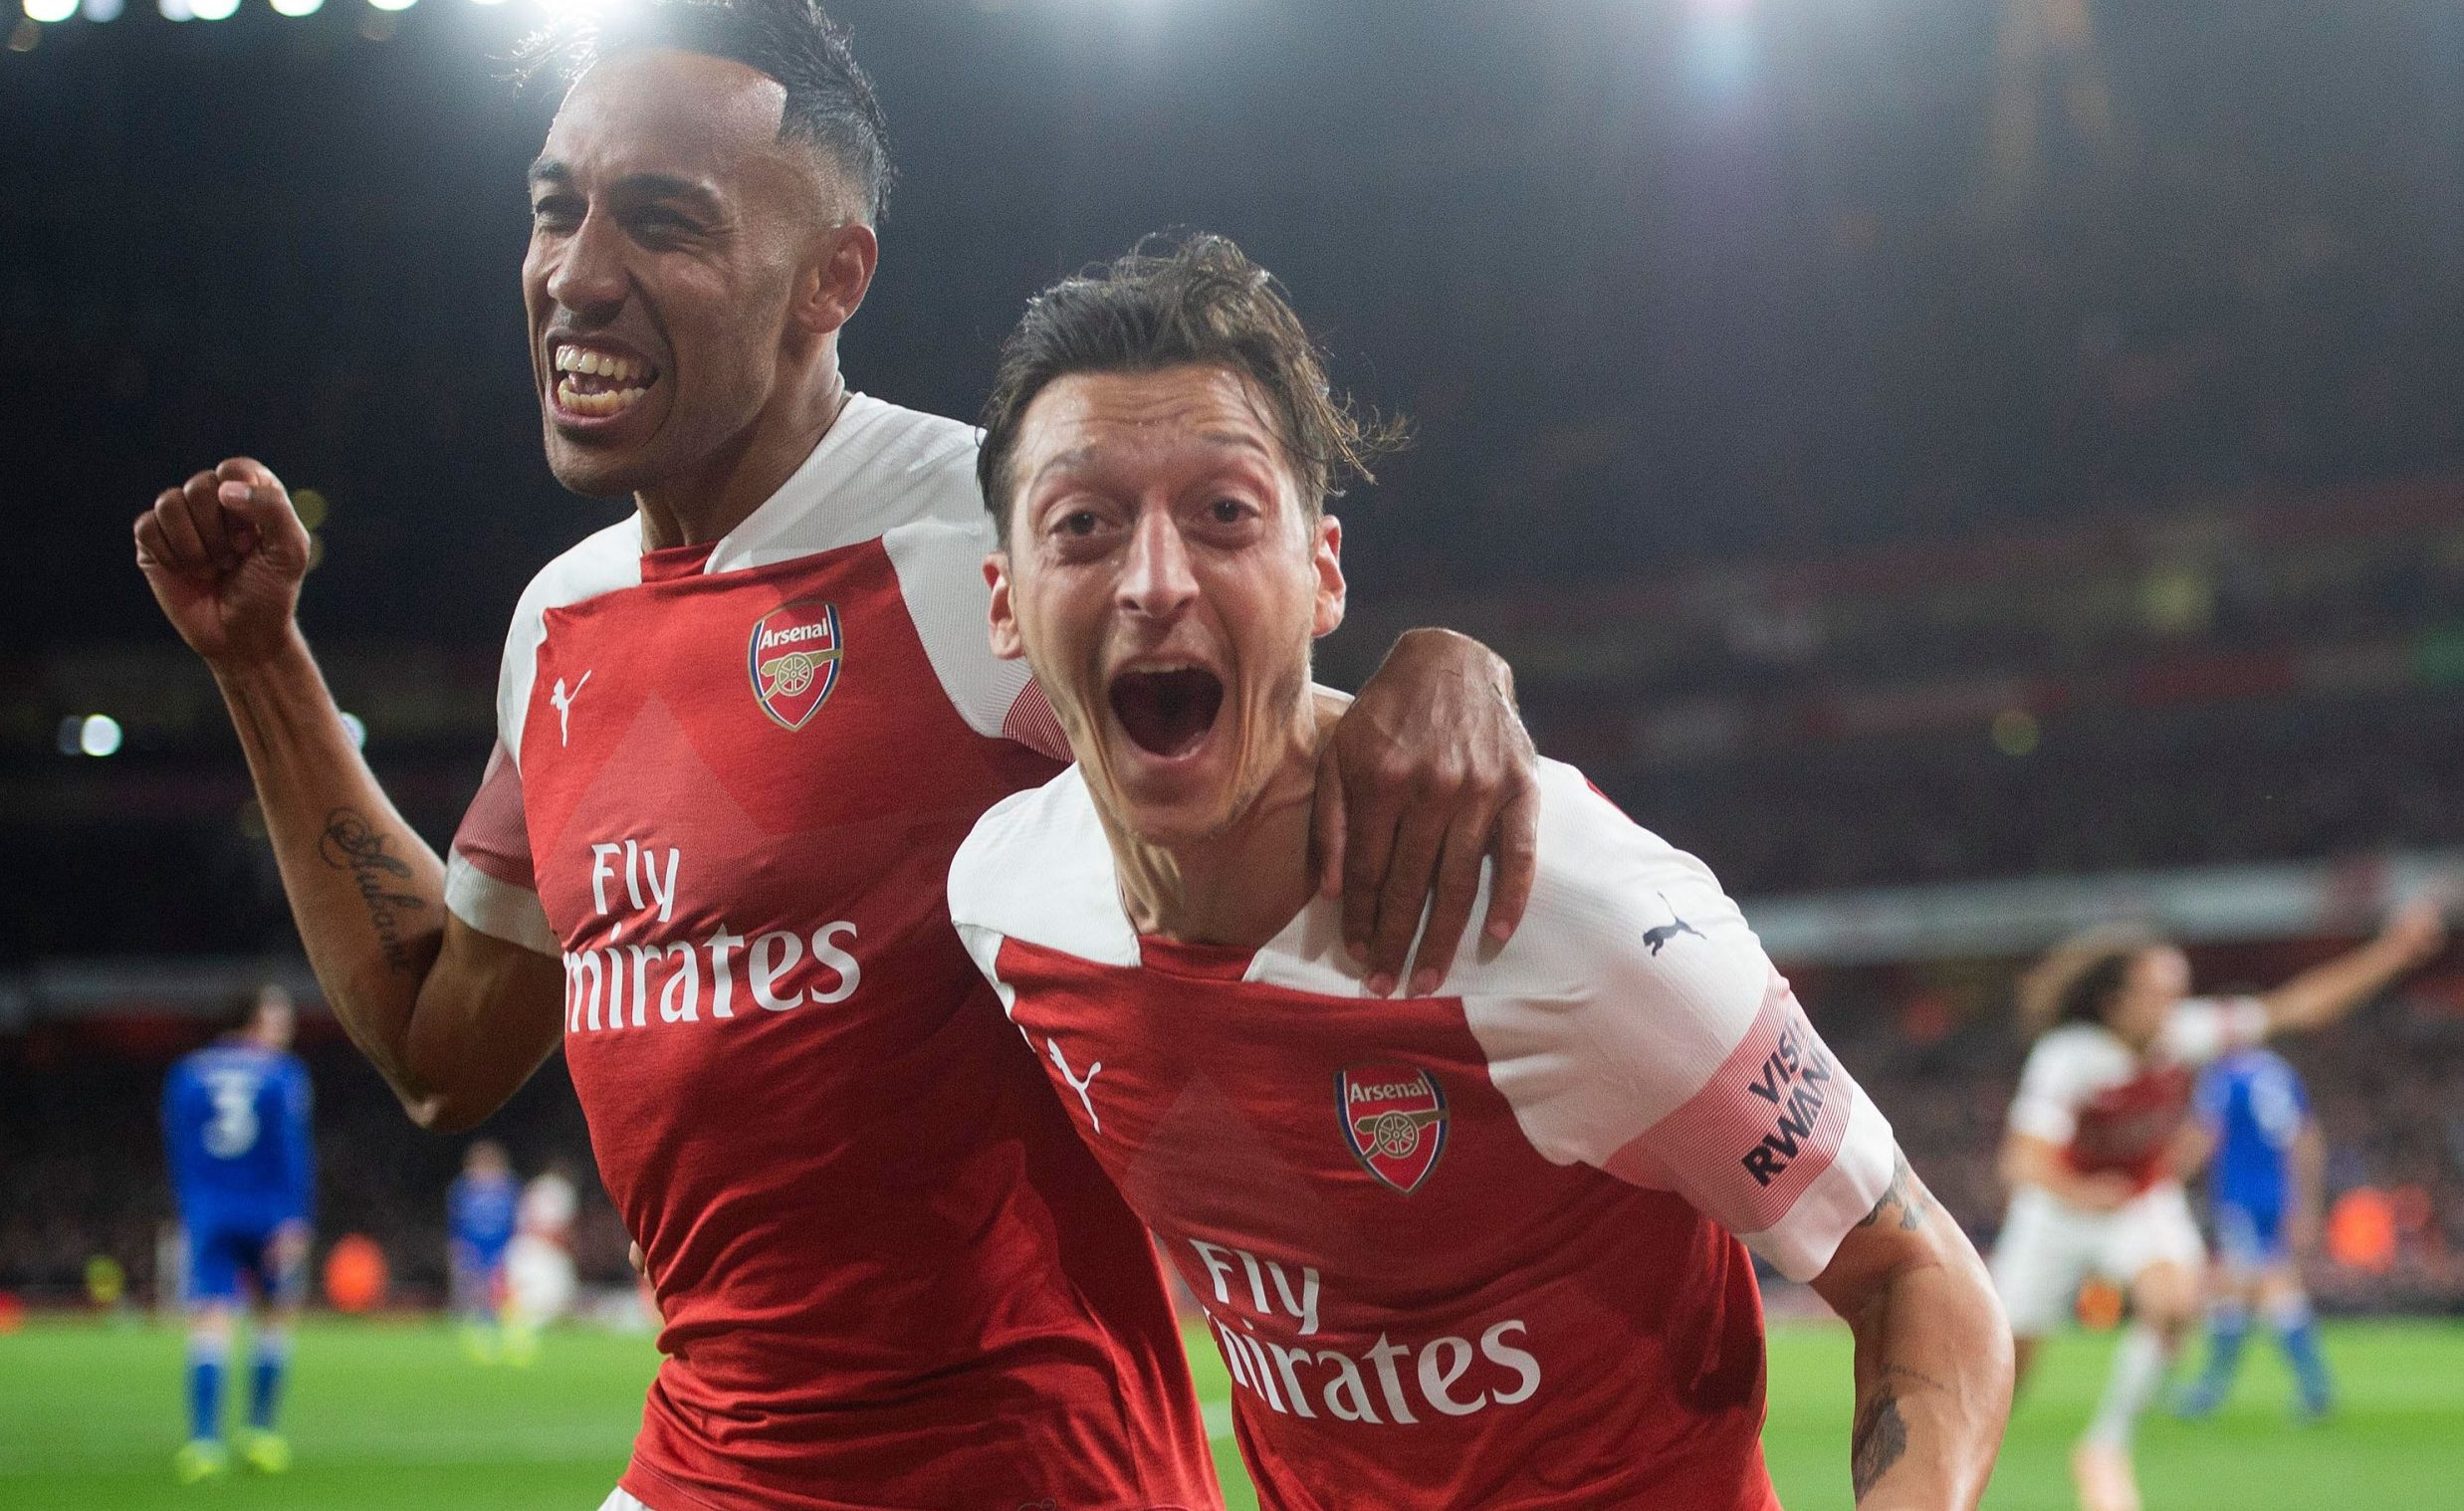 LONDON, ENGLAND - OCTOBER 22: Pierre-Emerick Aubameyang celebrates scoring Arsenal's 3rd goal with Mesut Ozil during the Premier League match between Arsenal FC and Leicester City at Emirates Stadium on October 22, 2018 in London, United Kingdom. (Photo by David Price/Arsenal FC via Getty Images)